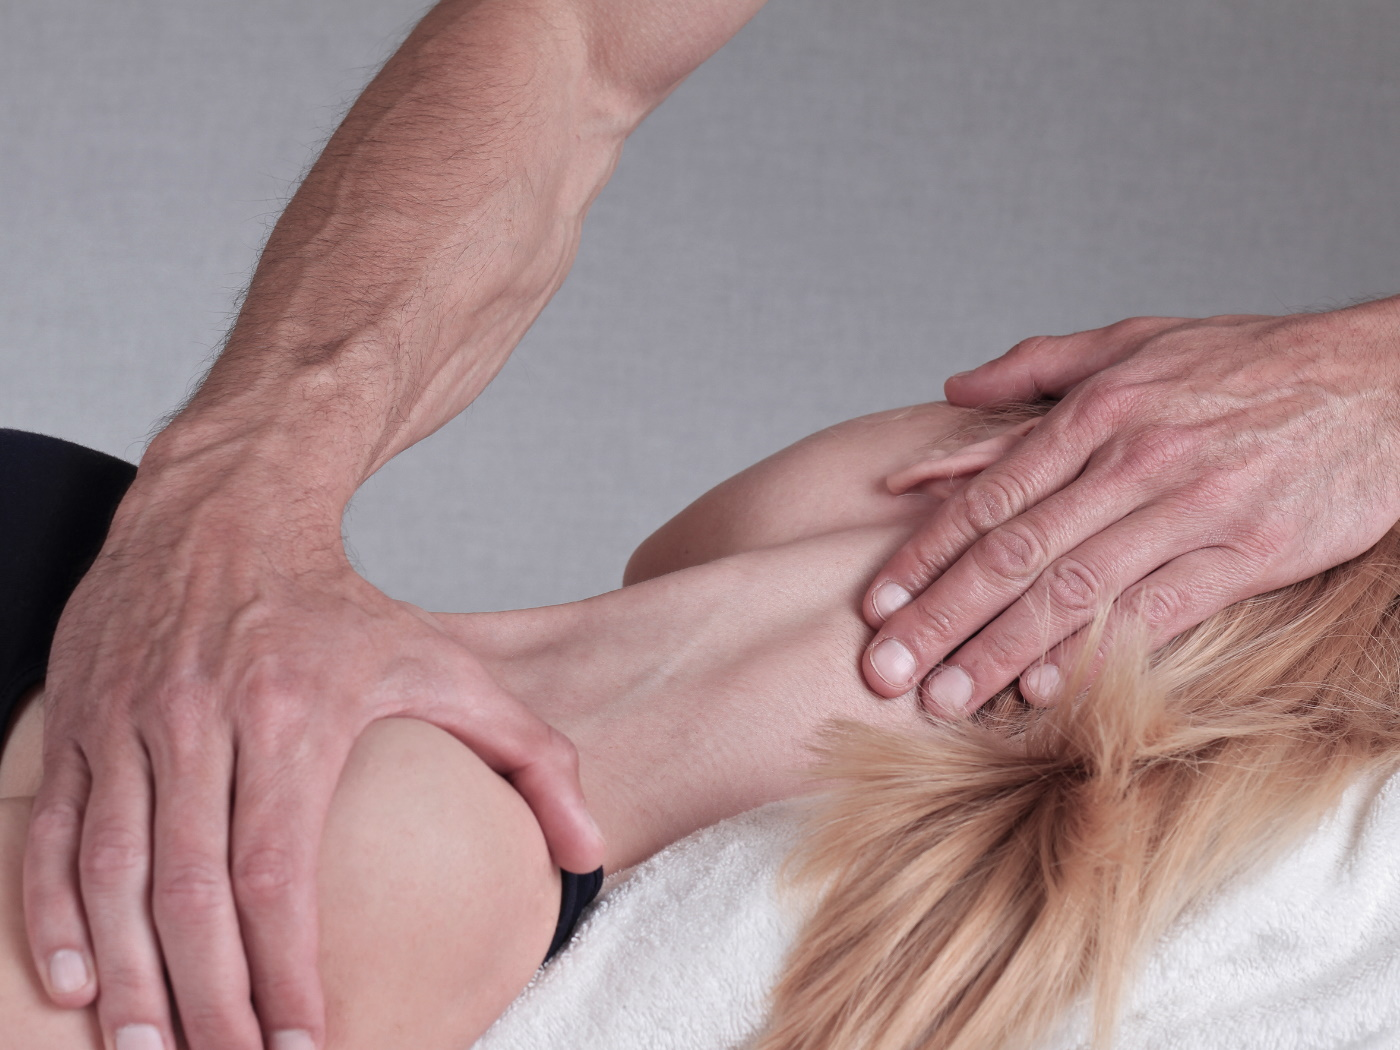 How Does The Body Benefit Itself From The Massage Therapist